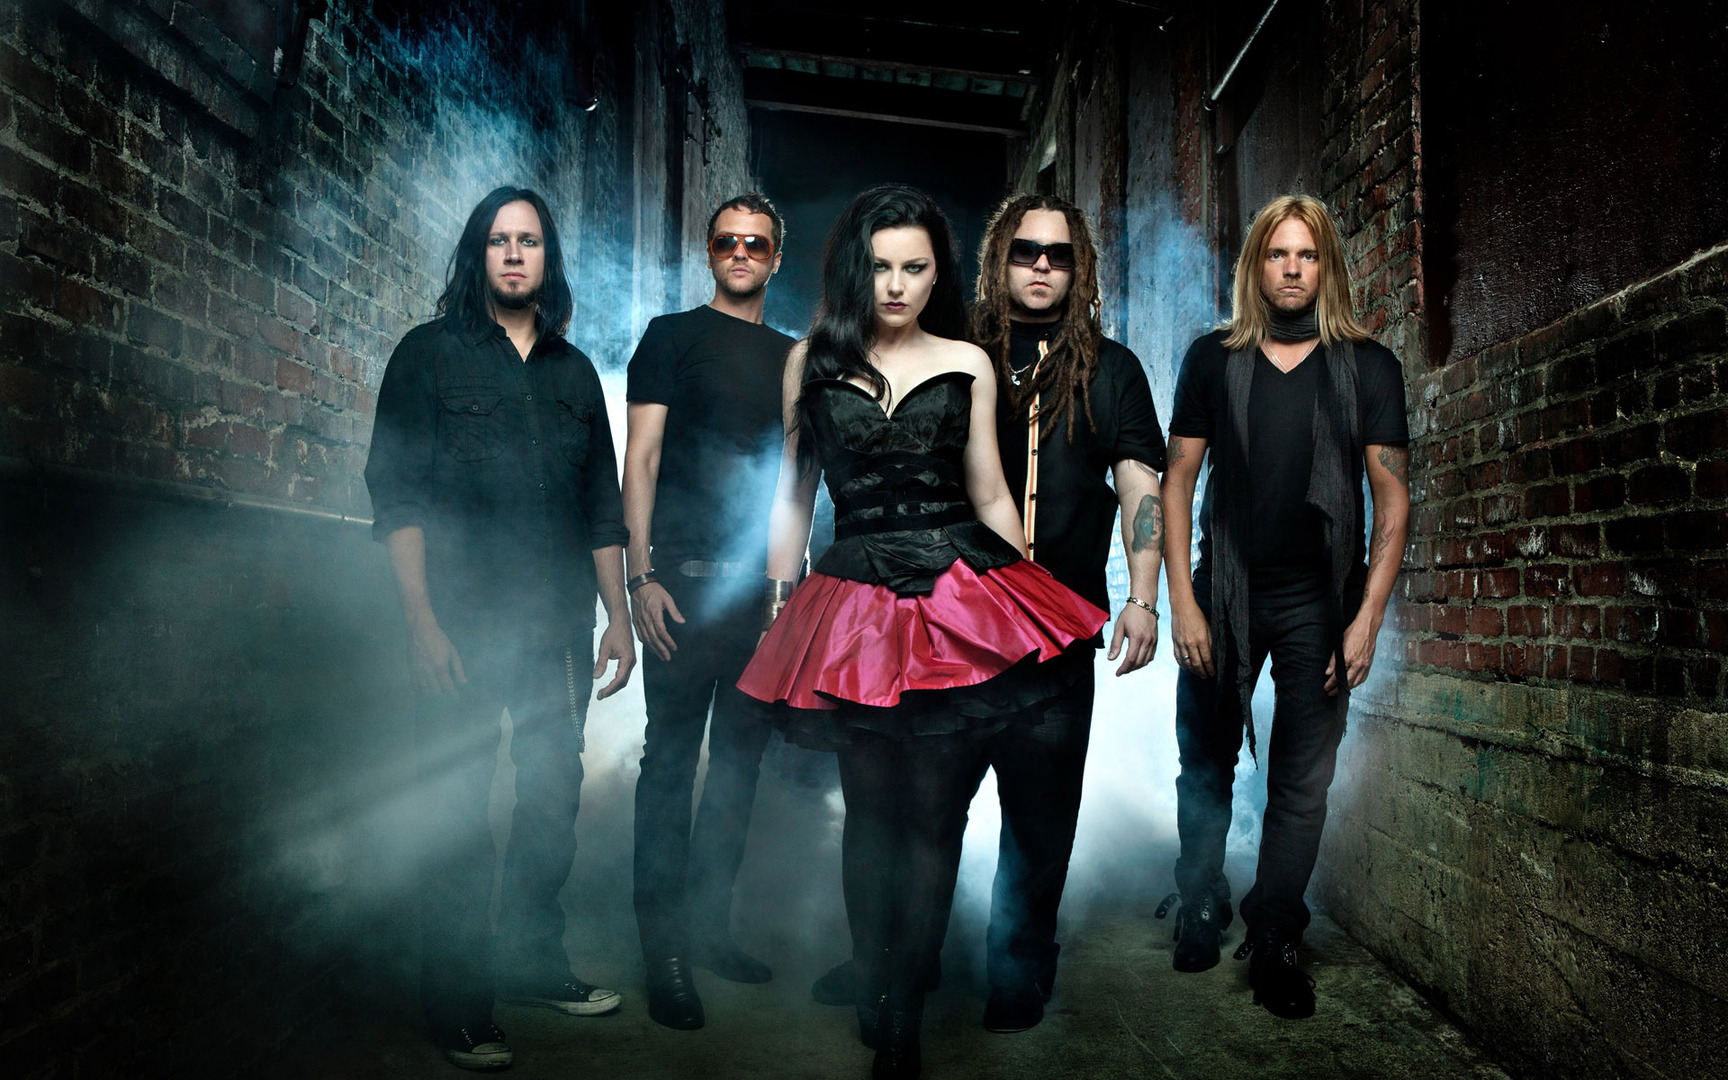 Evanescence wallpaper 18723 1728x1080